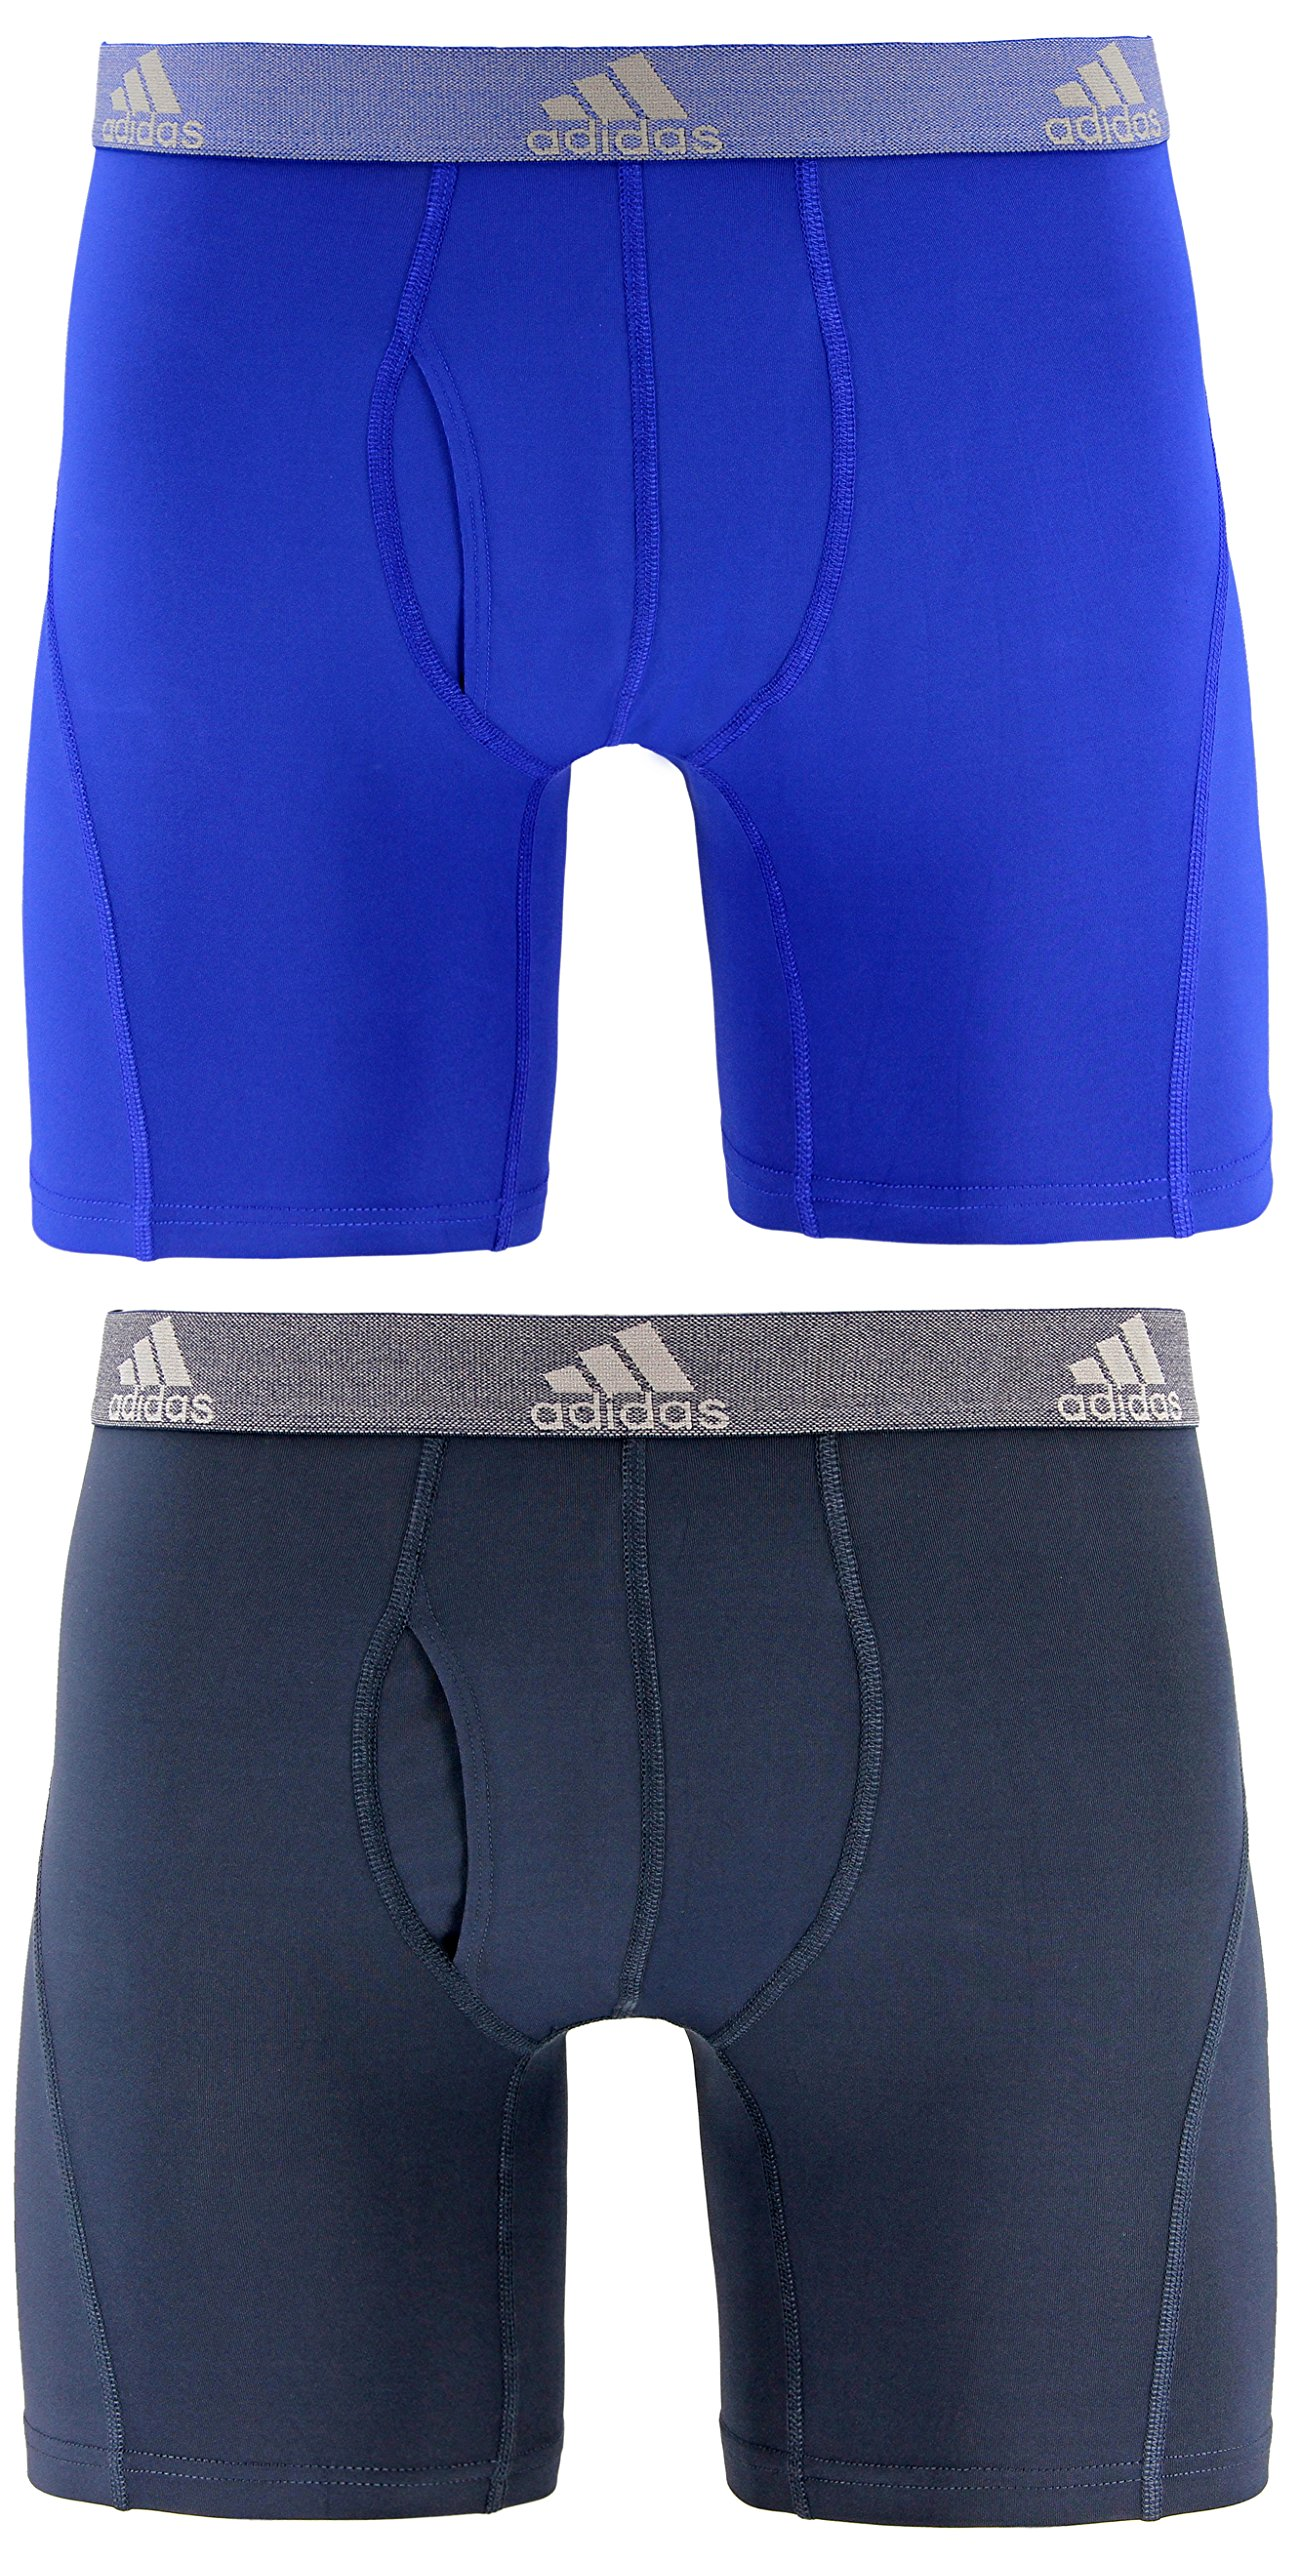 adidas Men's Relaxed Performance Climalite Boxer Brief Underwear (2-Pack), Bold Blue Urban Sky, LARGE by adidas